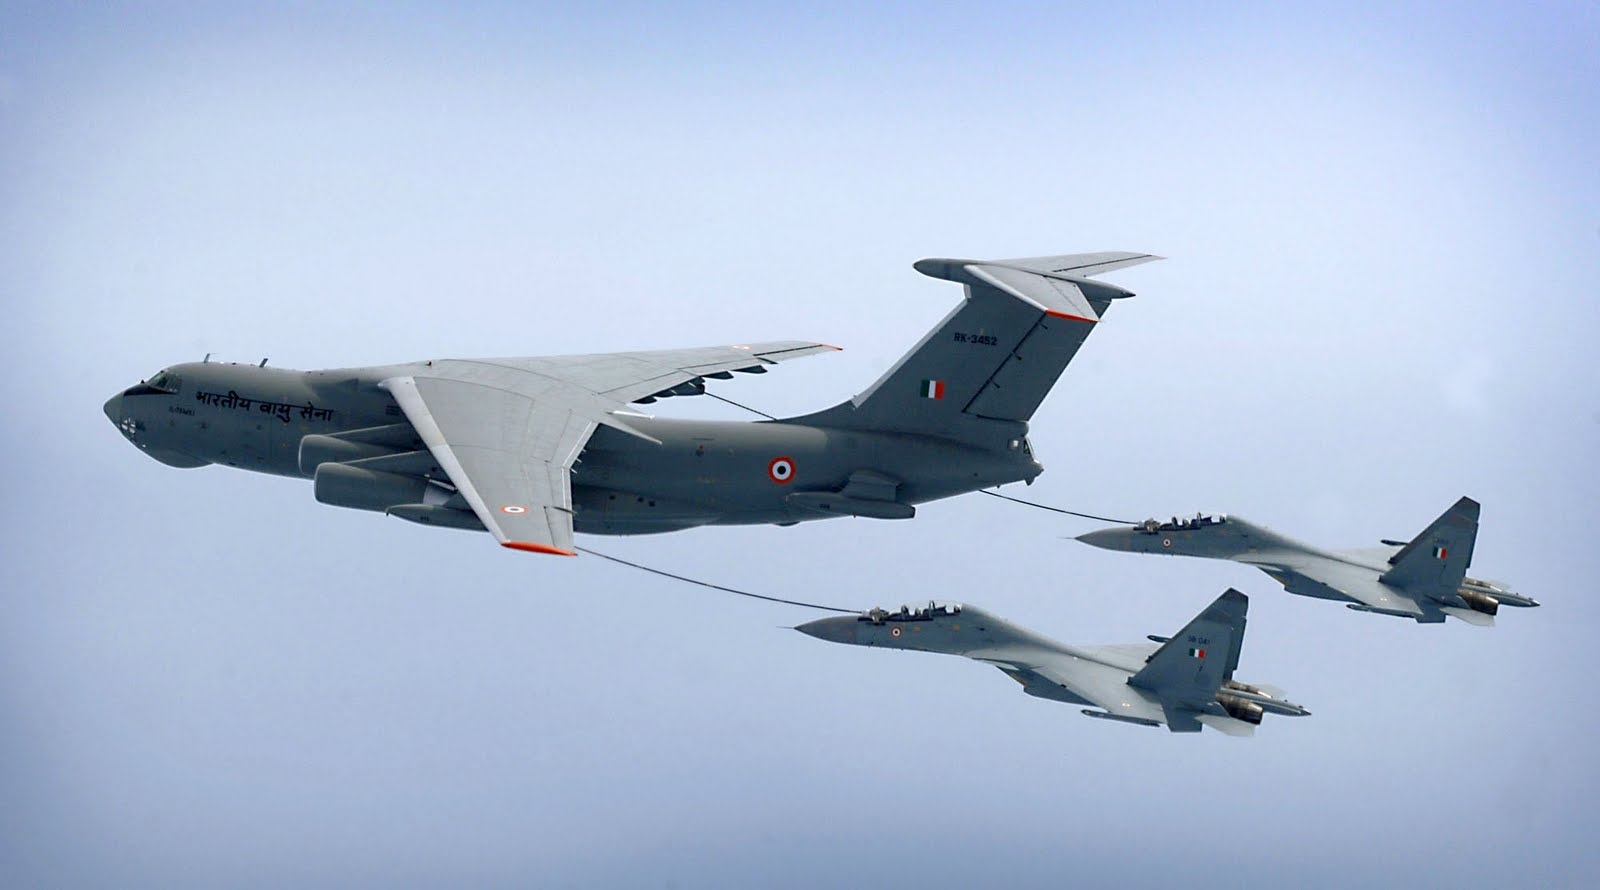 IAF to participate in Red Flag air exercise : Hunt for the top guns !!!